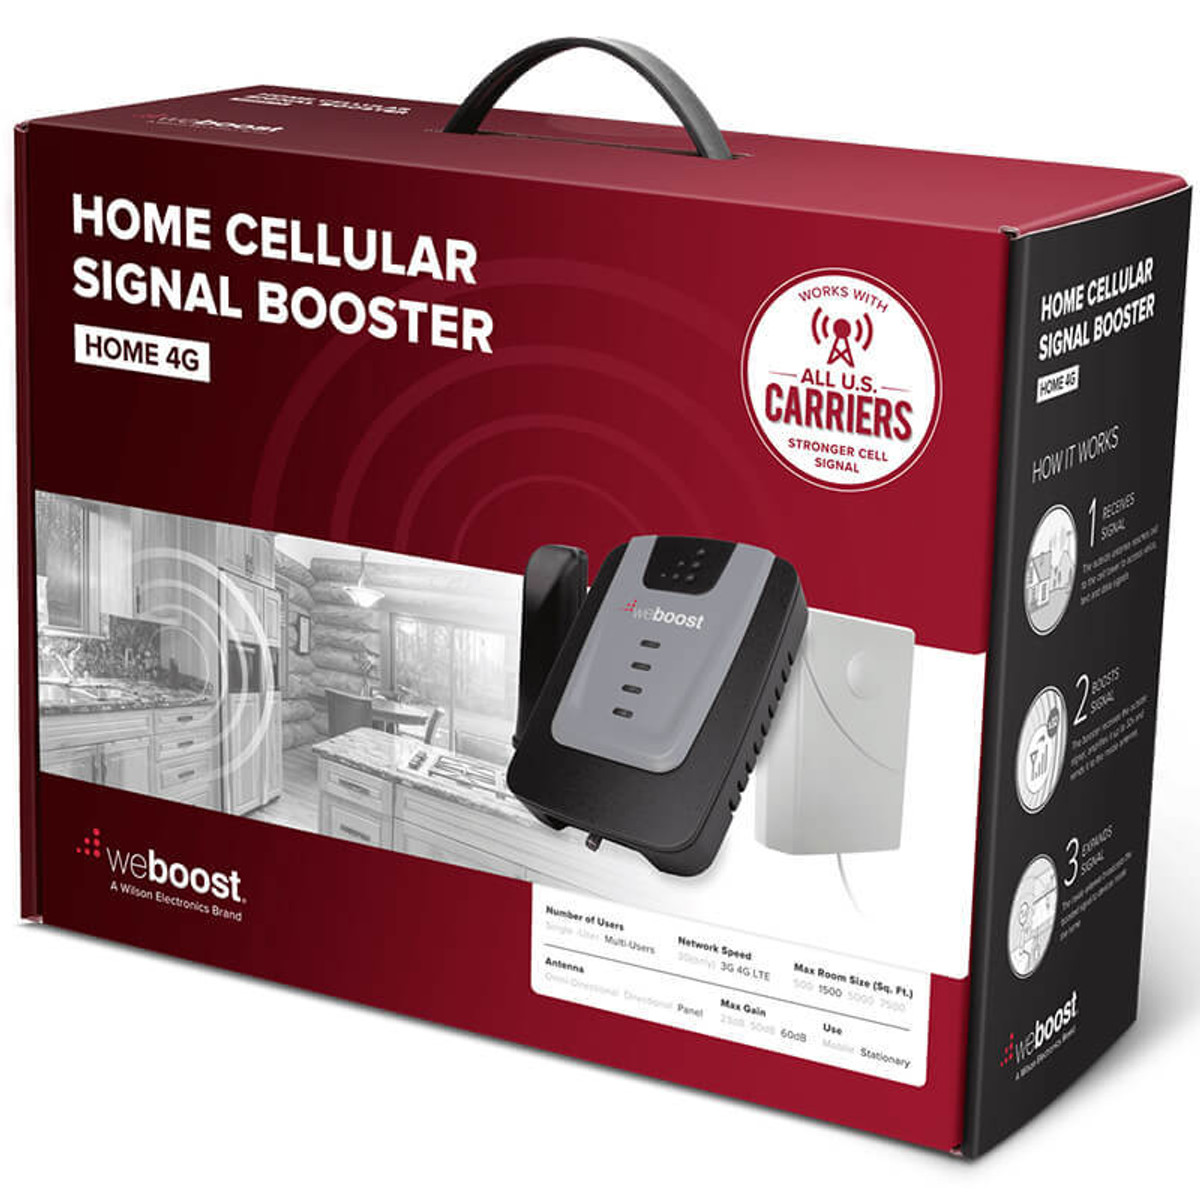 weBoost Home 4G Cell Phone Signal Booster Kit | 470101